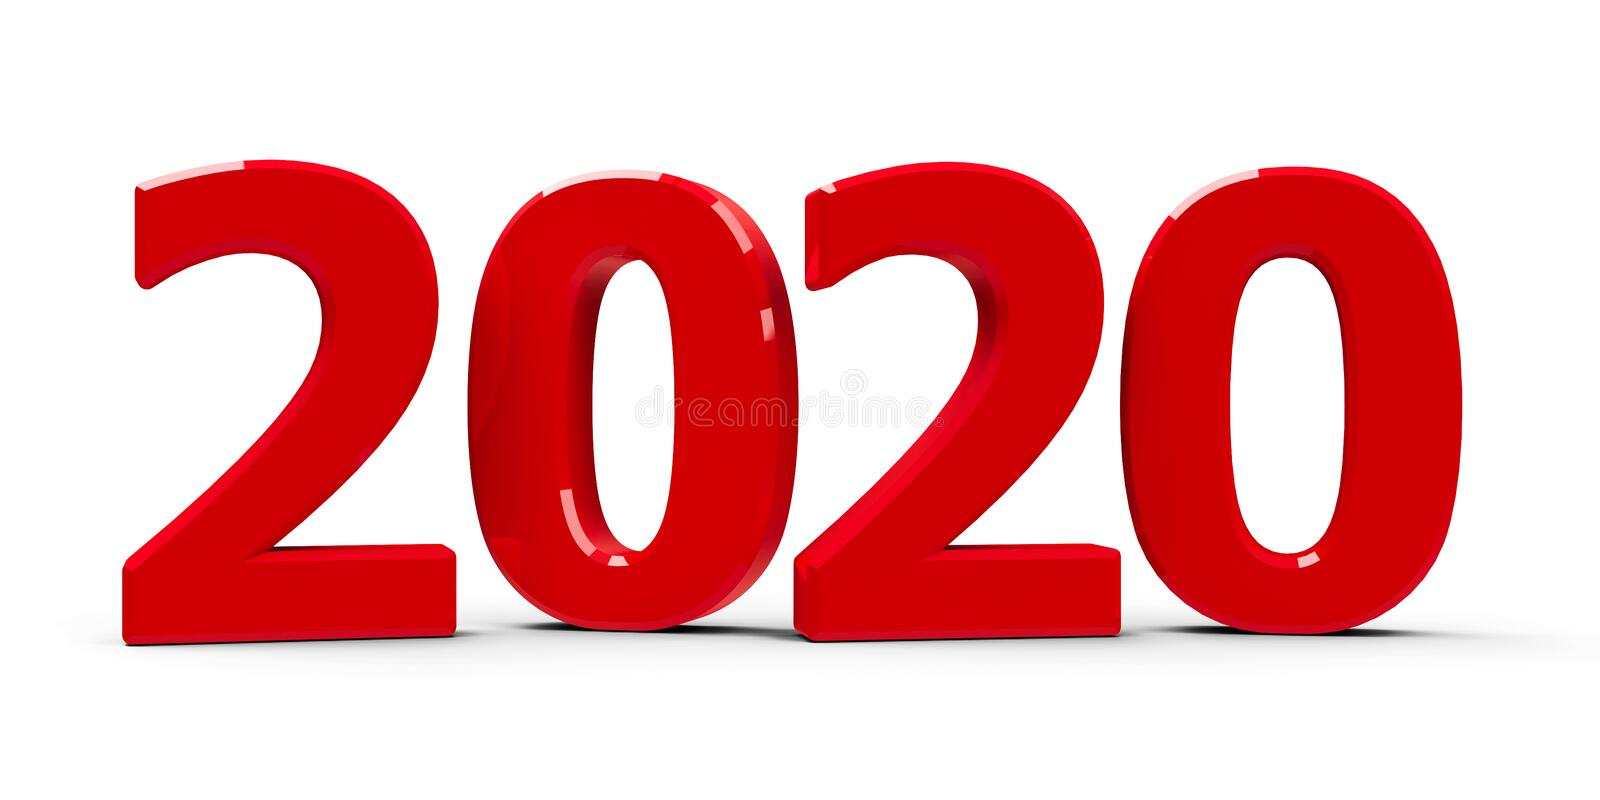 Red 2020 icon royalty free illustration